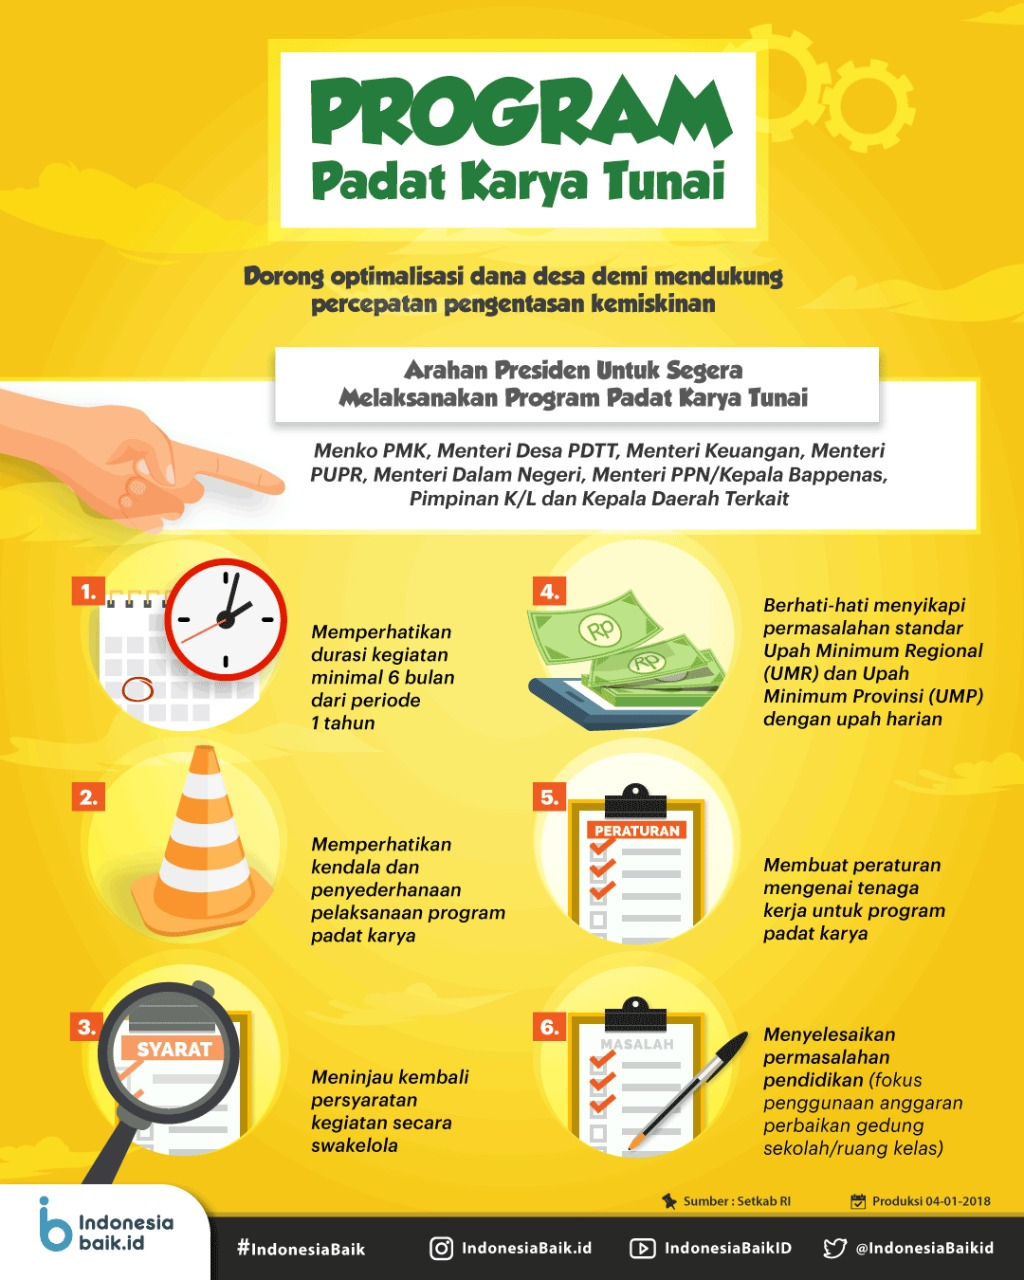 Program Padat Karya Tunai I